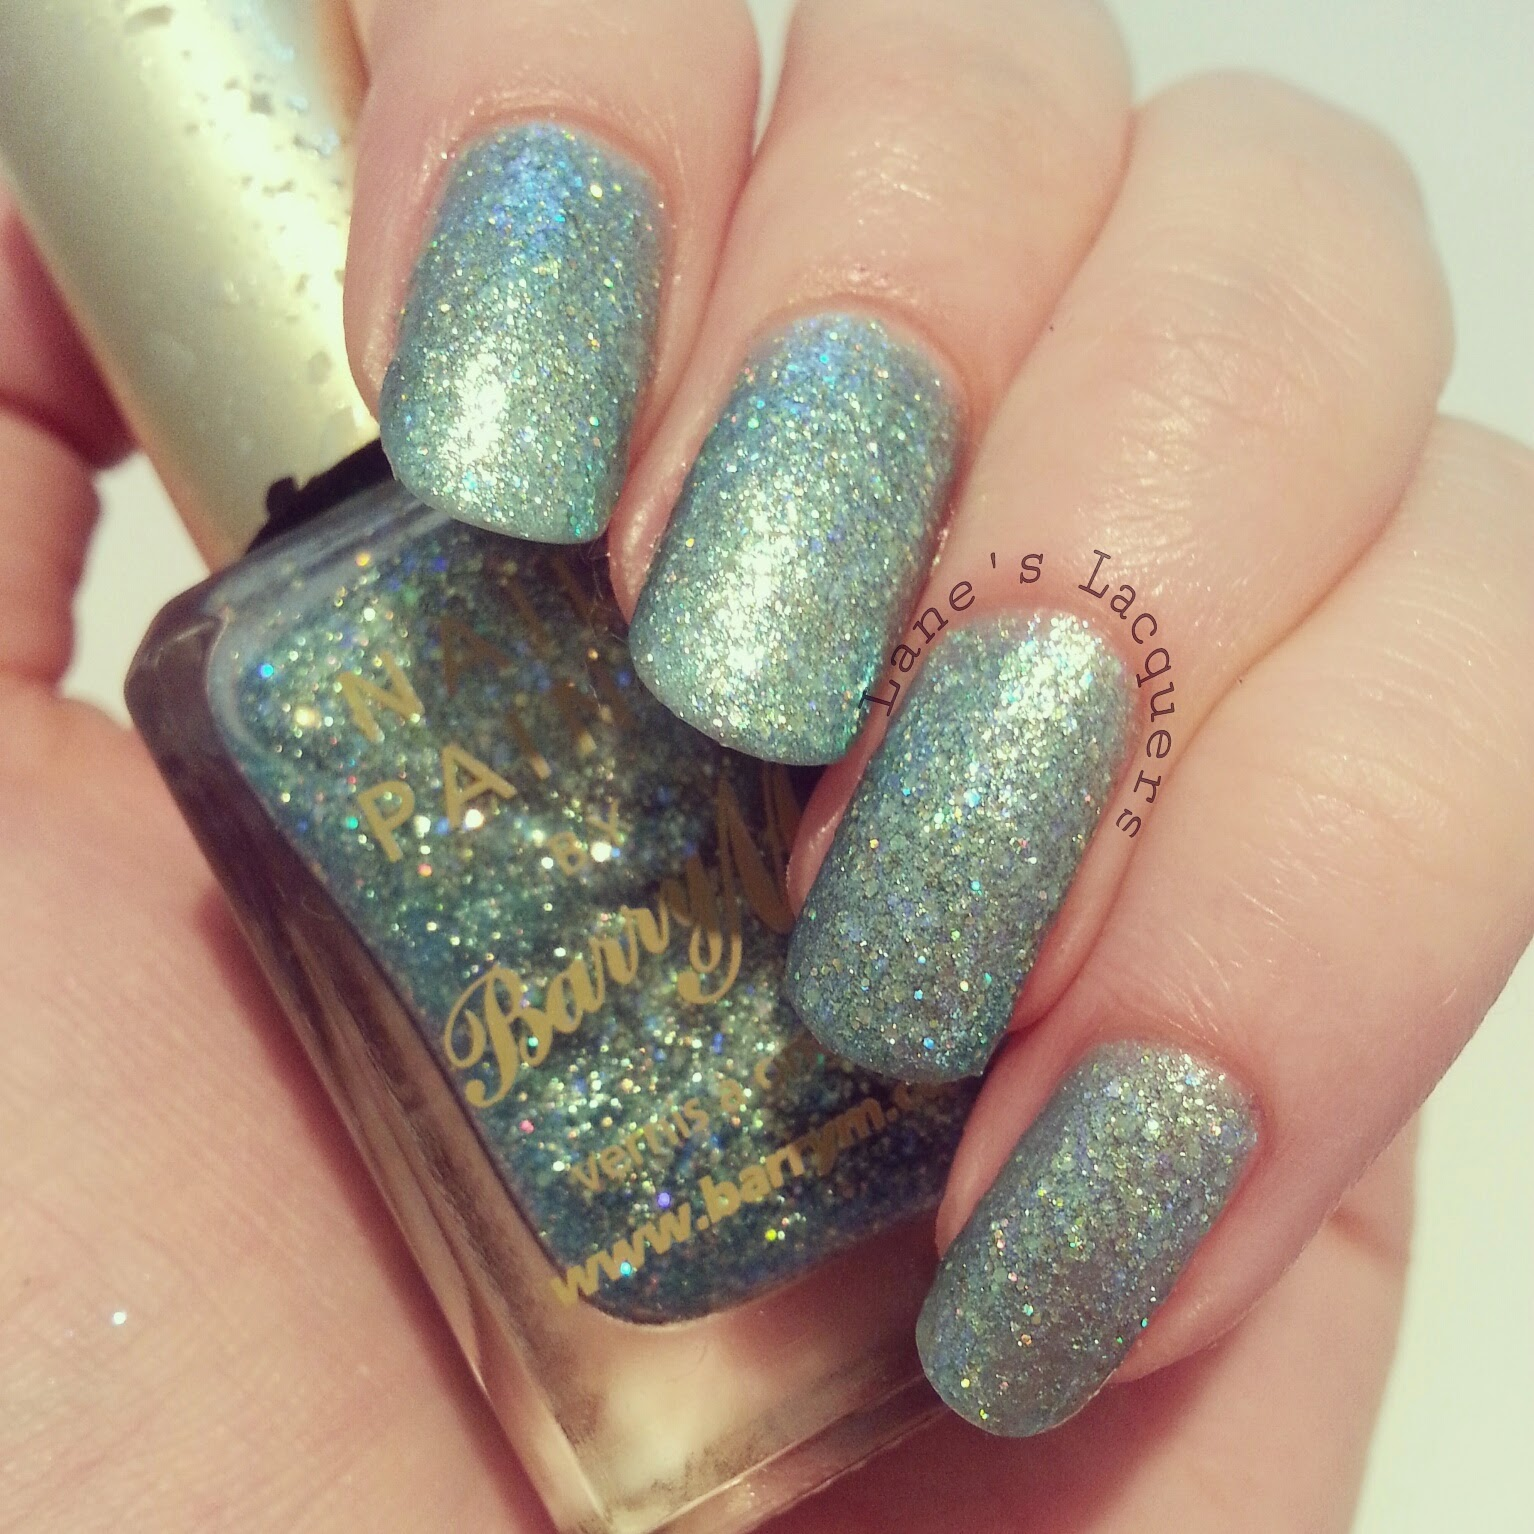 new-barry-m-glitterati-catwalk-queen-swatch-manicure (2)